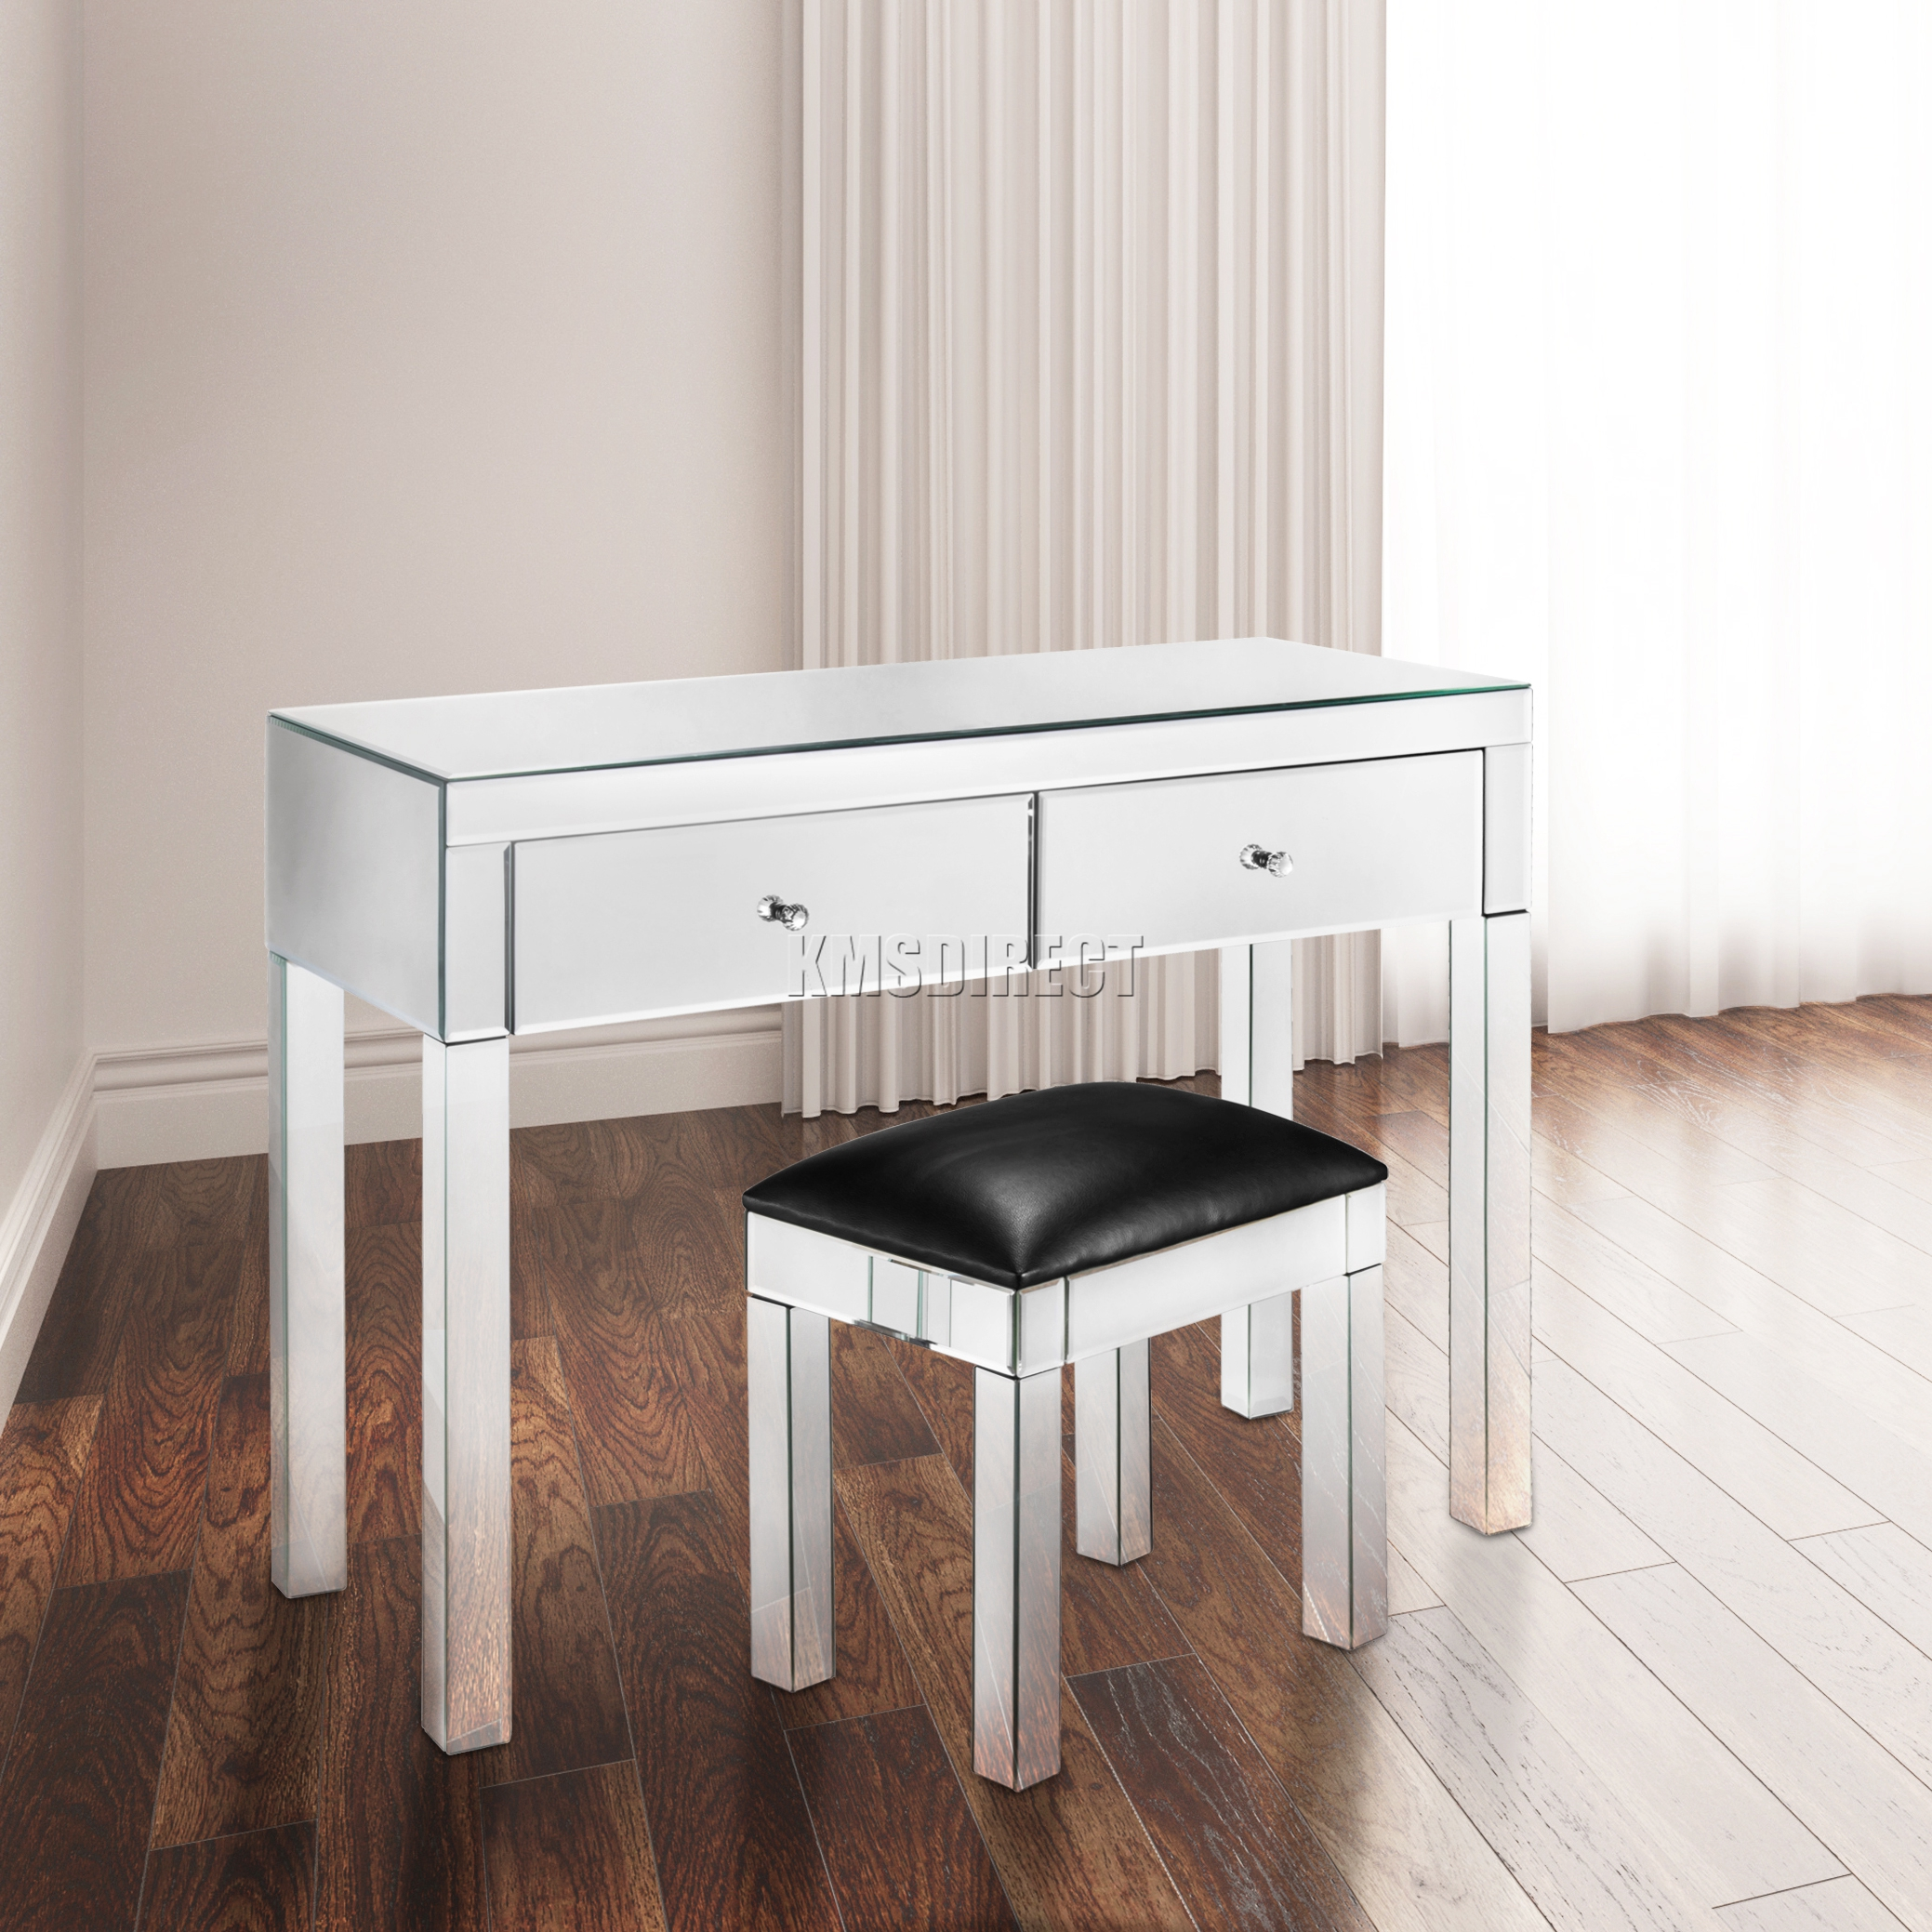 Mirrored Furniture Foxhunter Mirrored Furniture Glass 2 Drawer Dressing Table Console